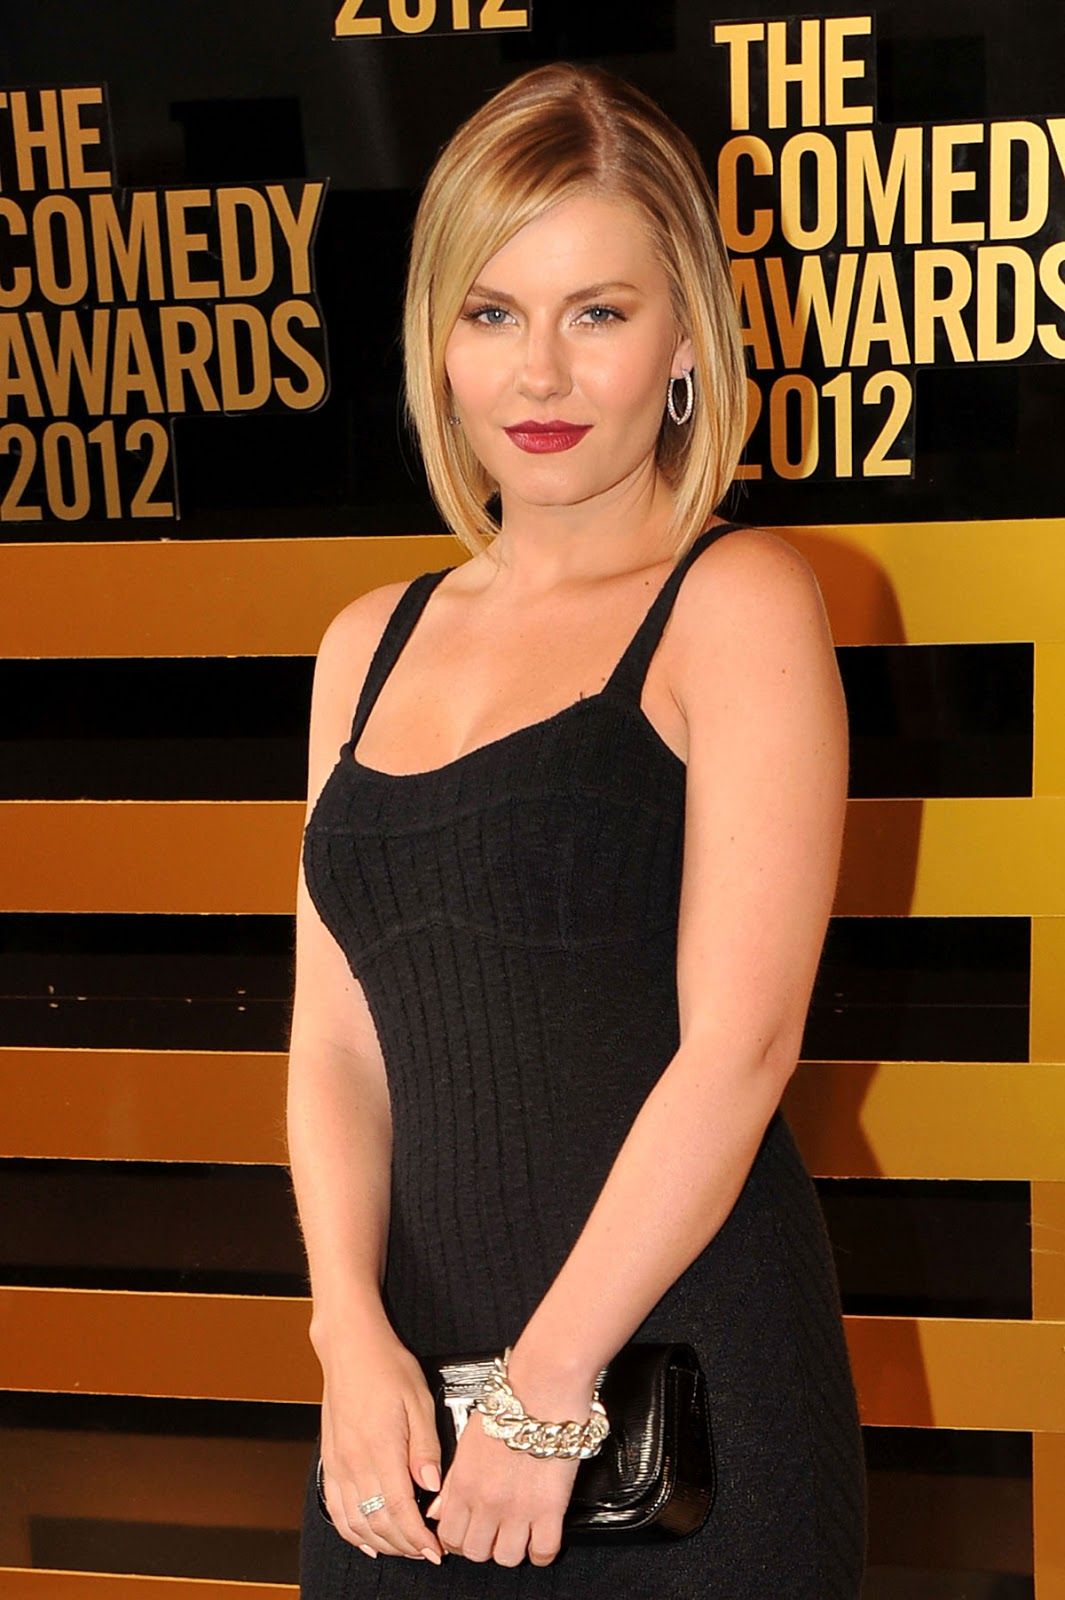 Elisha Cuthbert Wallpapers Page 1 HD Wallpapers - elisha cuthbert desktop wallpapers